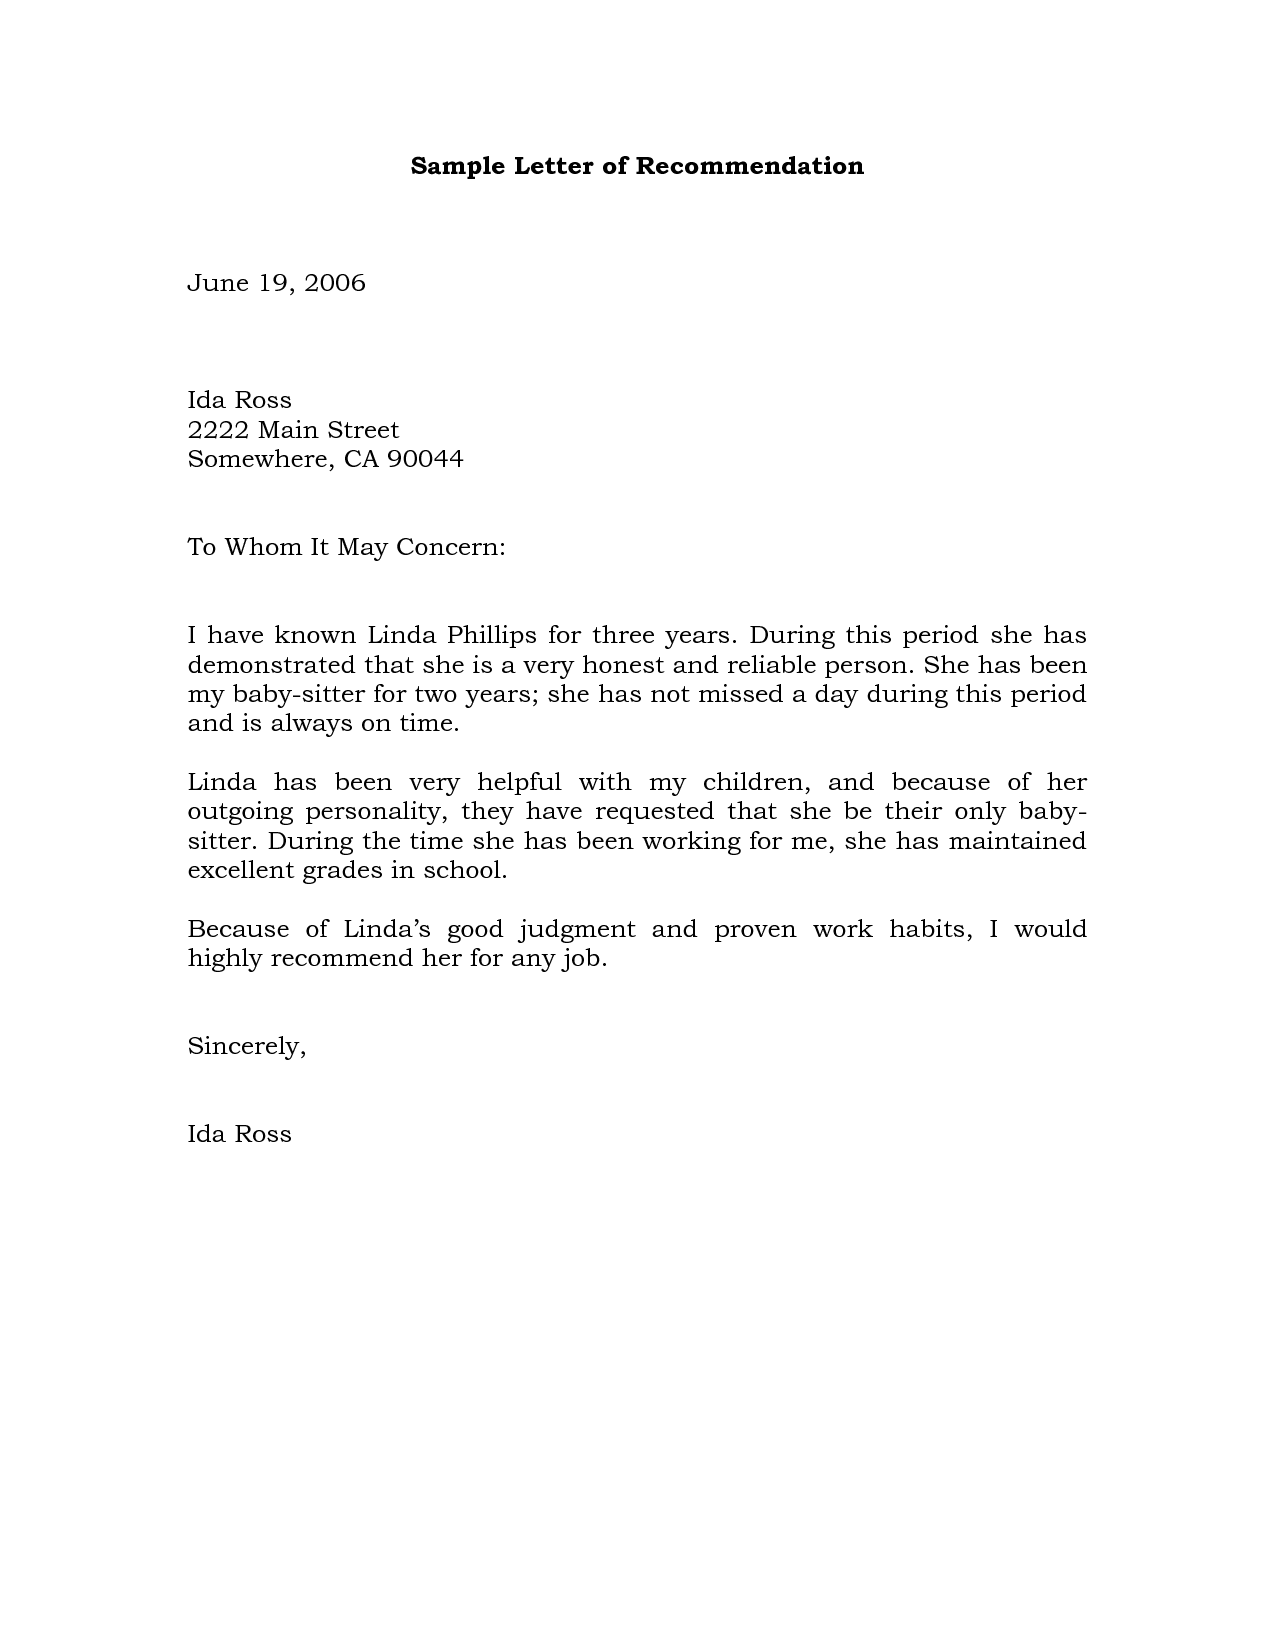 Recommendation Letter Samples